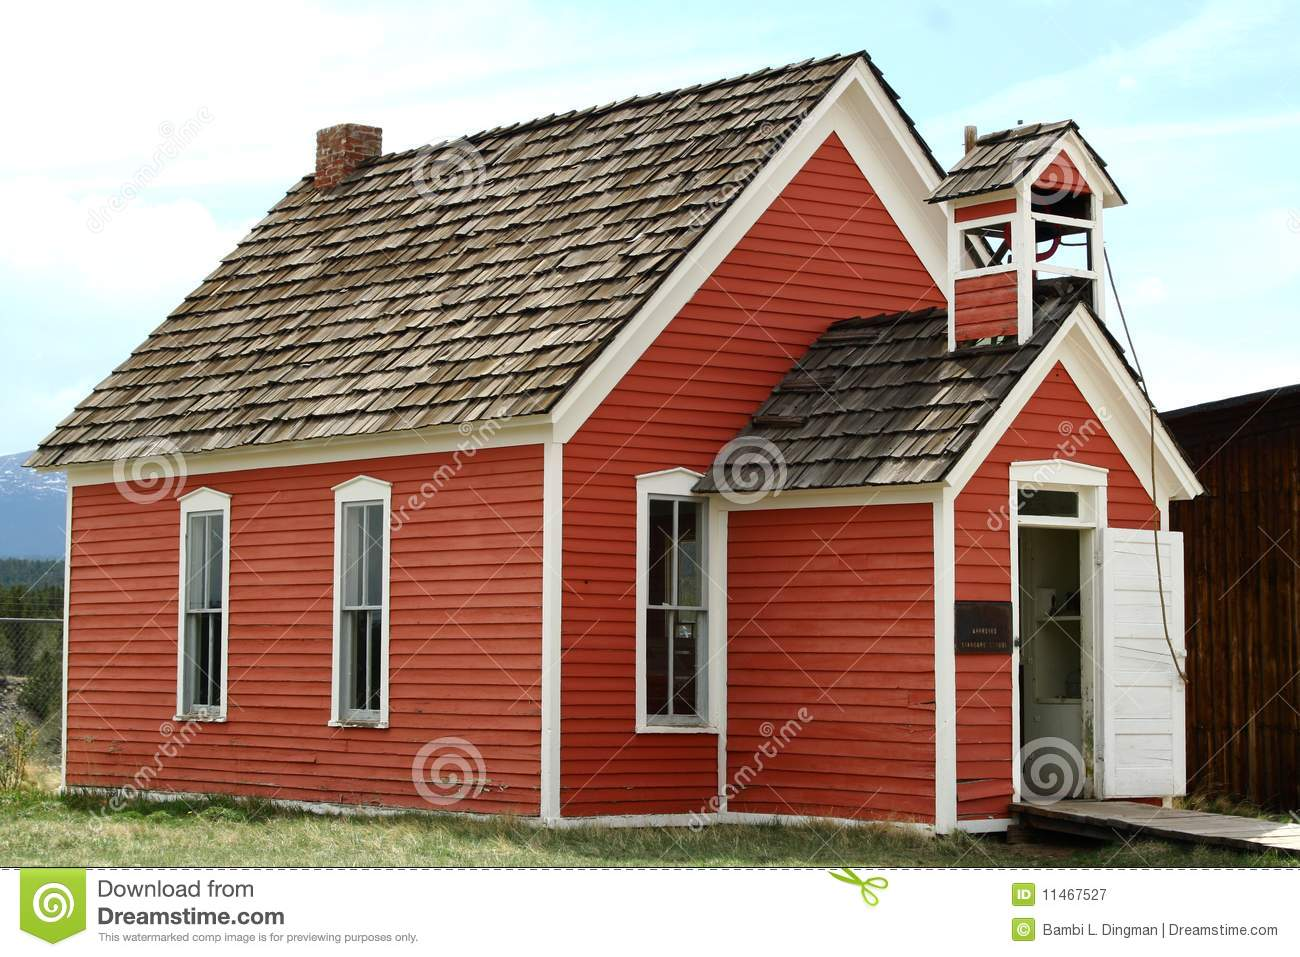 Red school house images